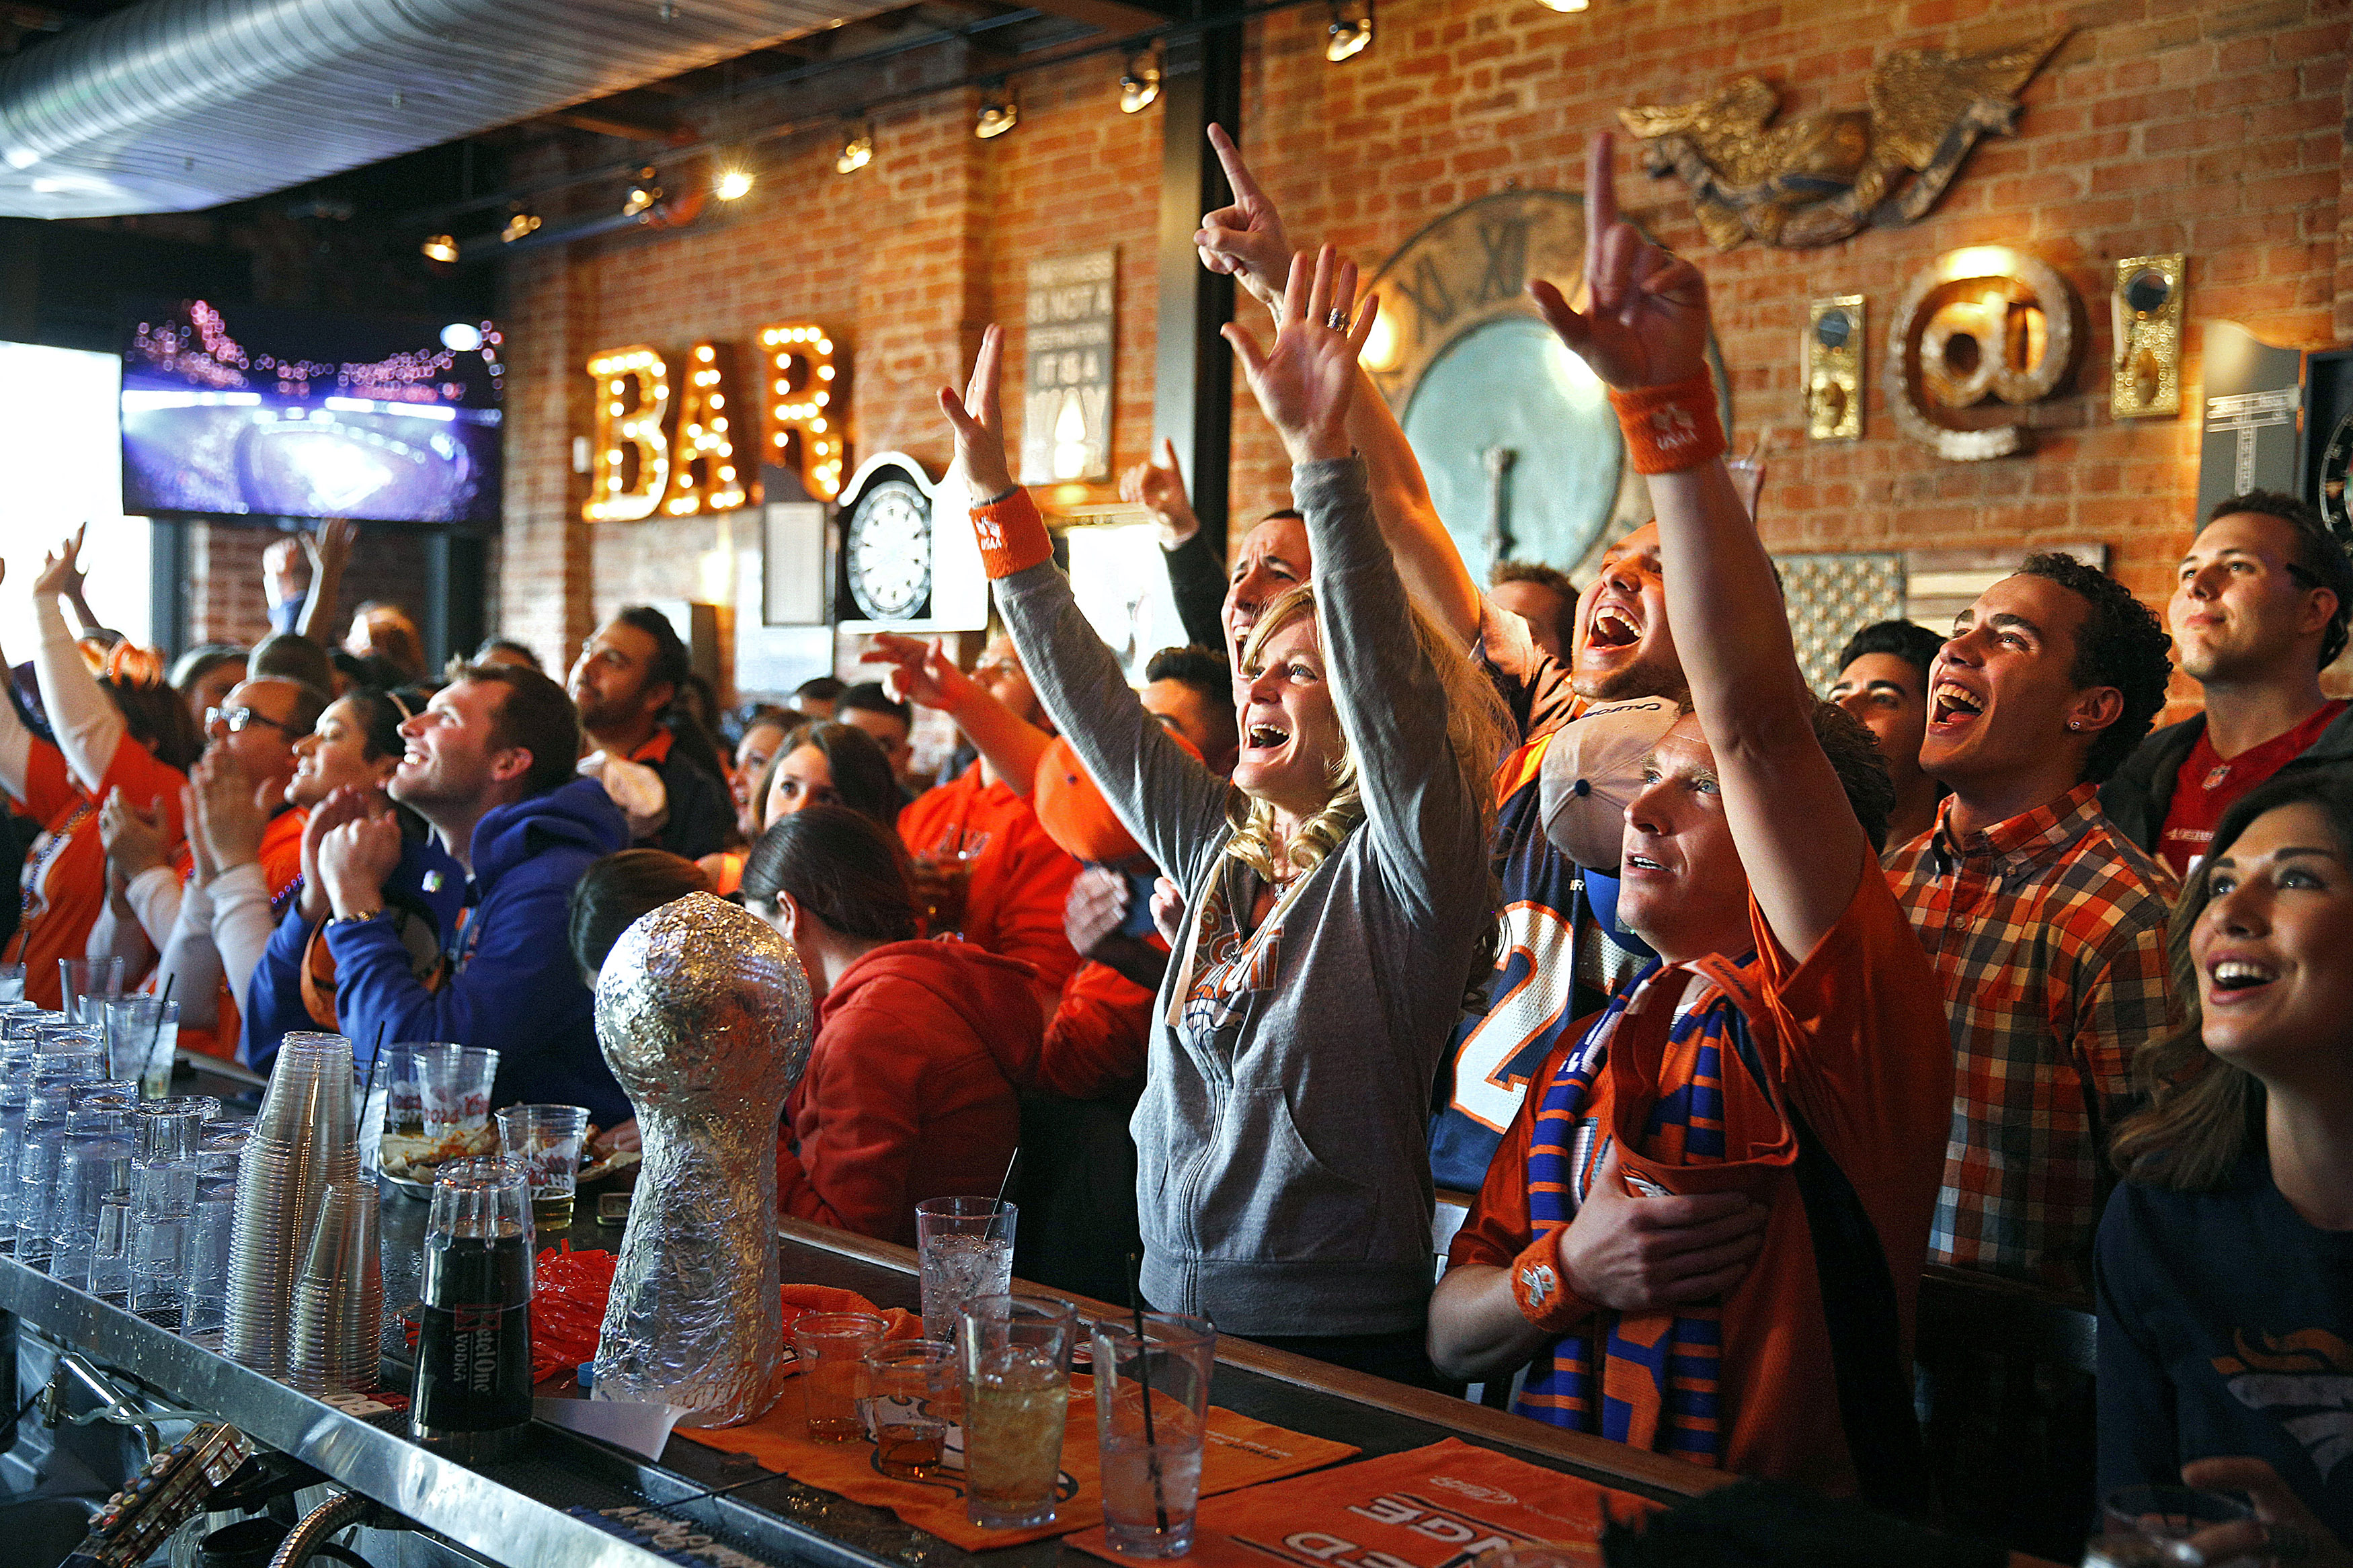 Broncos fans cheer as their team takes the field against the Seahawks while watching the NFL Super Bowl XLVIII football game at a bar in Denver